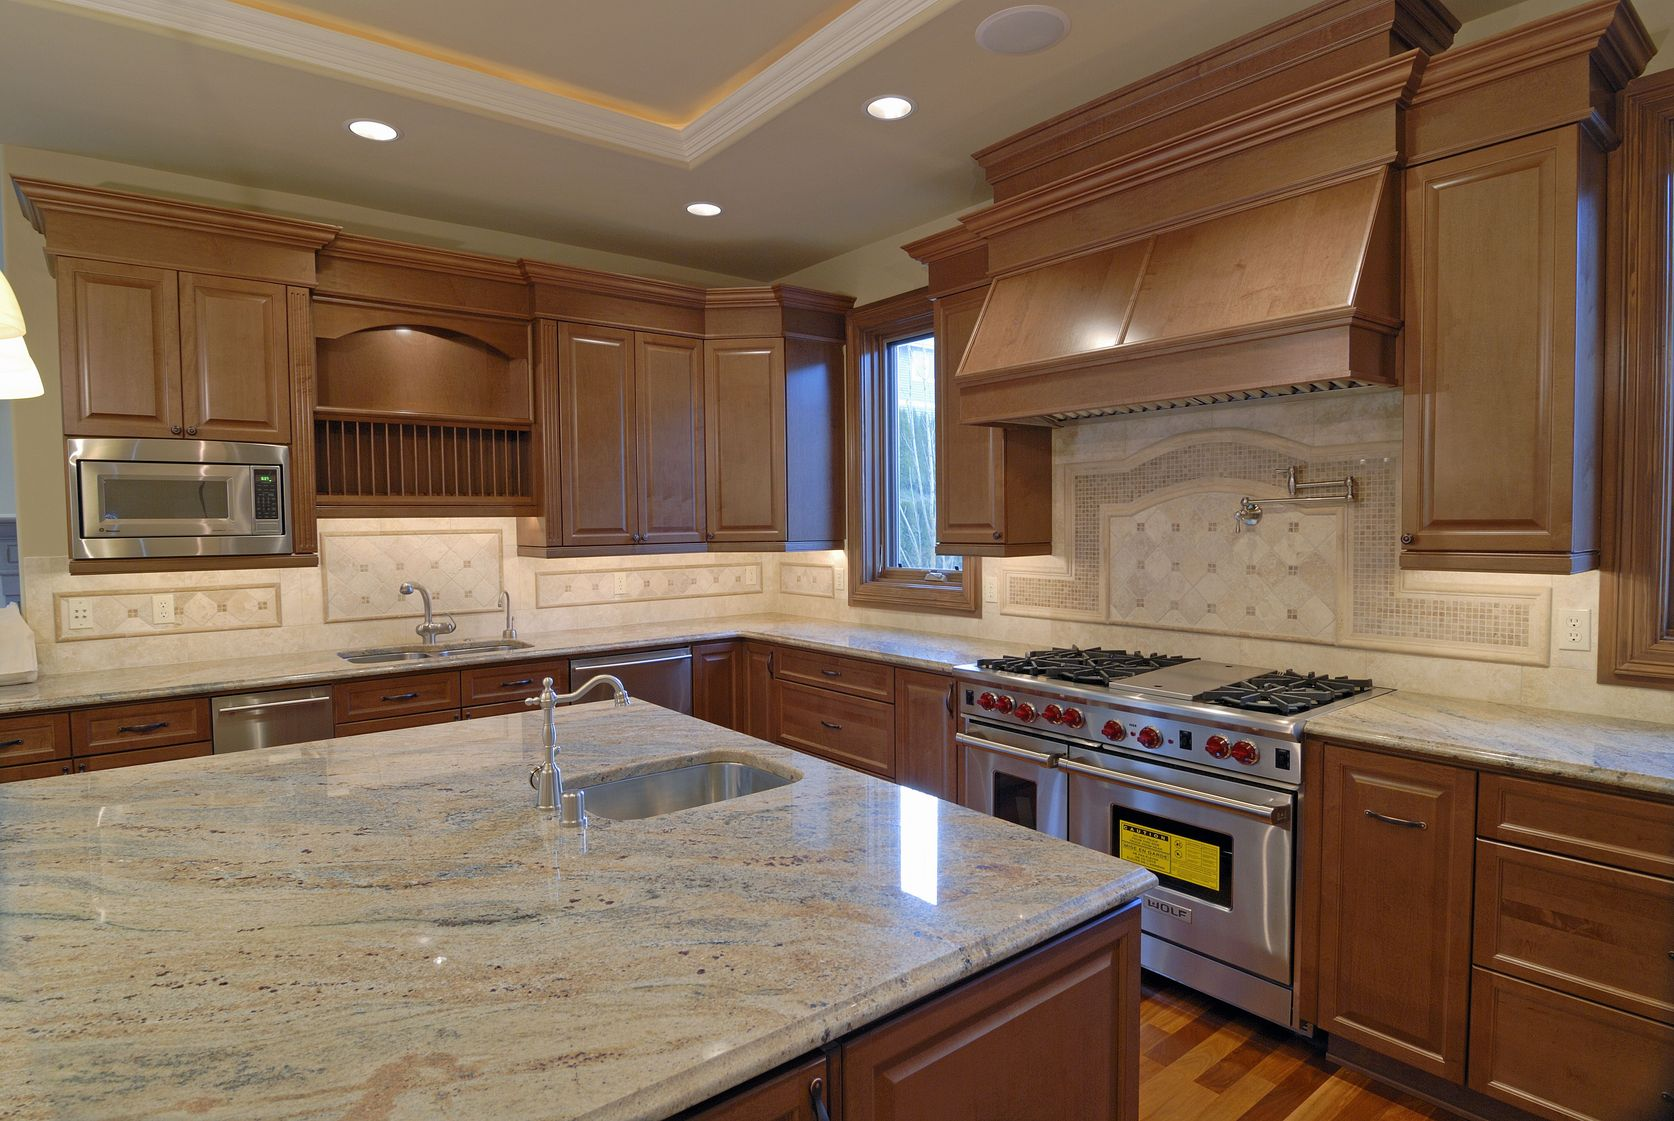 Kitchen remodeling tips how to design a kitchen with marble countertops amanzi marble granite Kitchen design with granite countertops